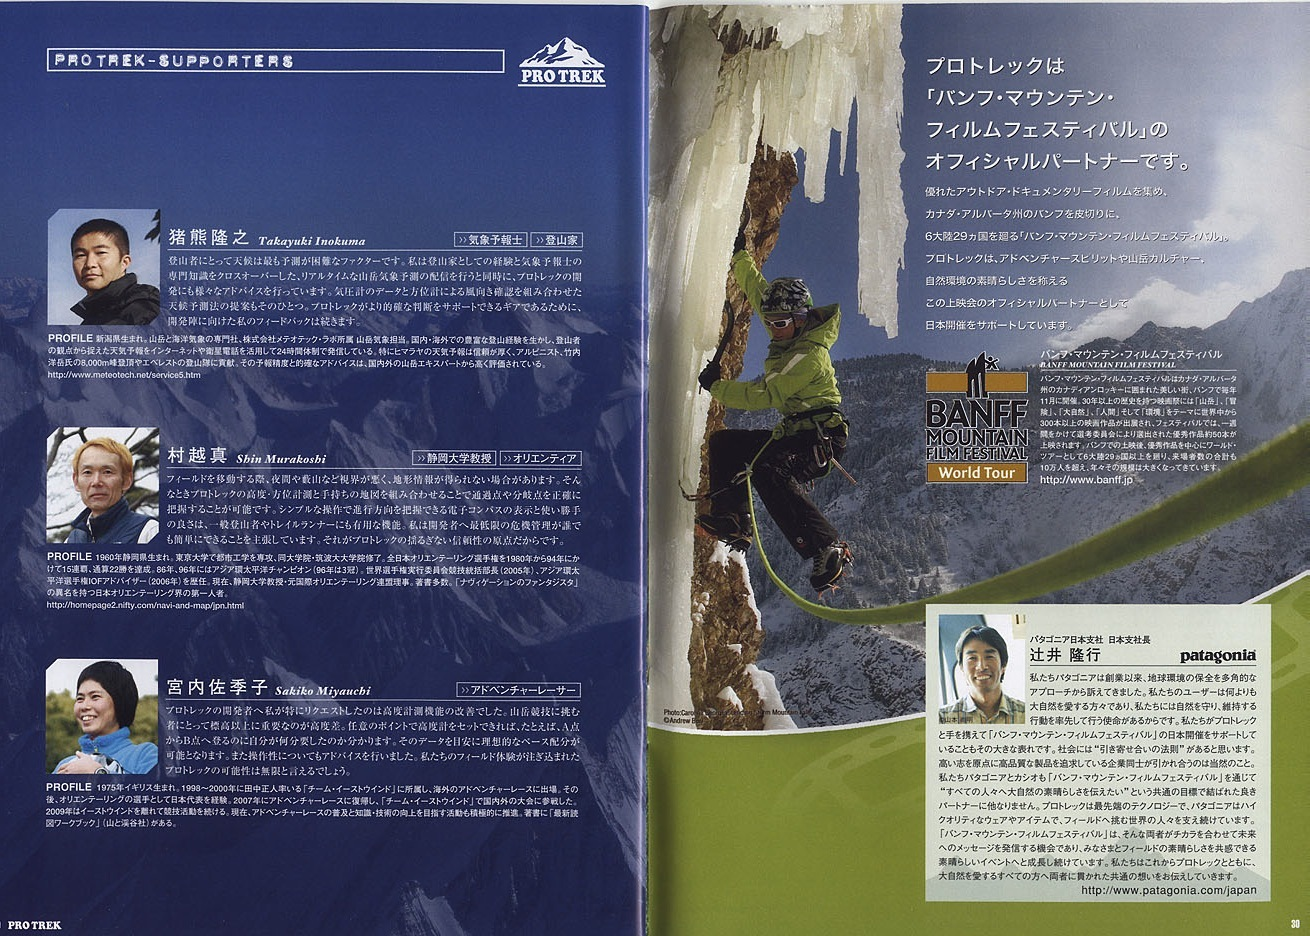 Casio-Pro-Trek-Collection-Summer-2009-Page-16.jpg